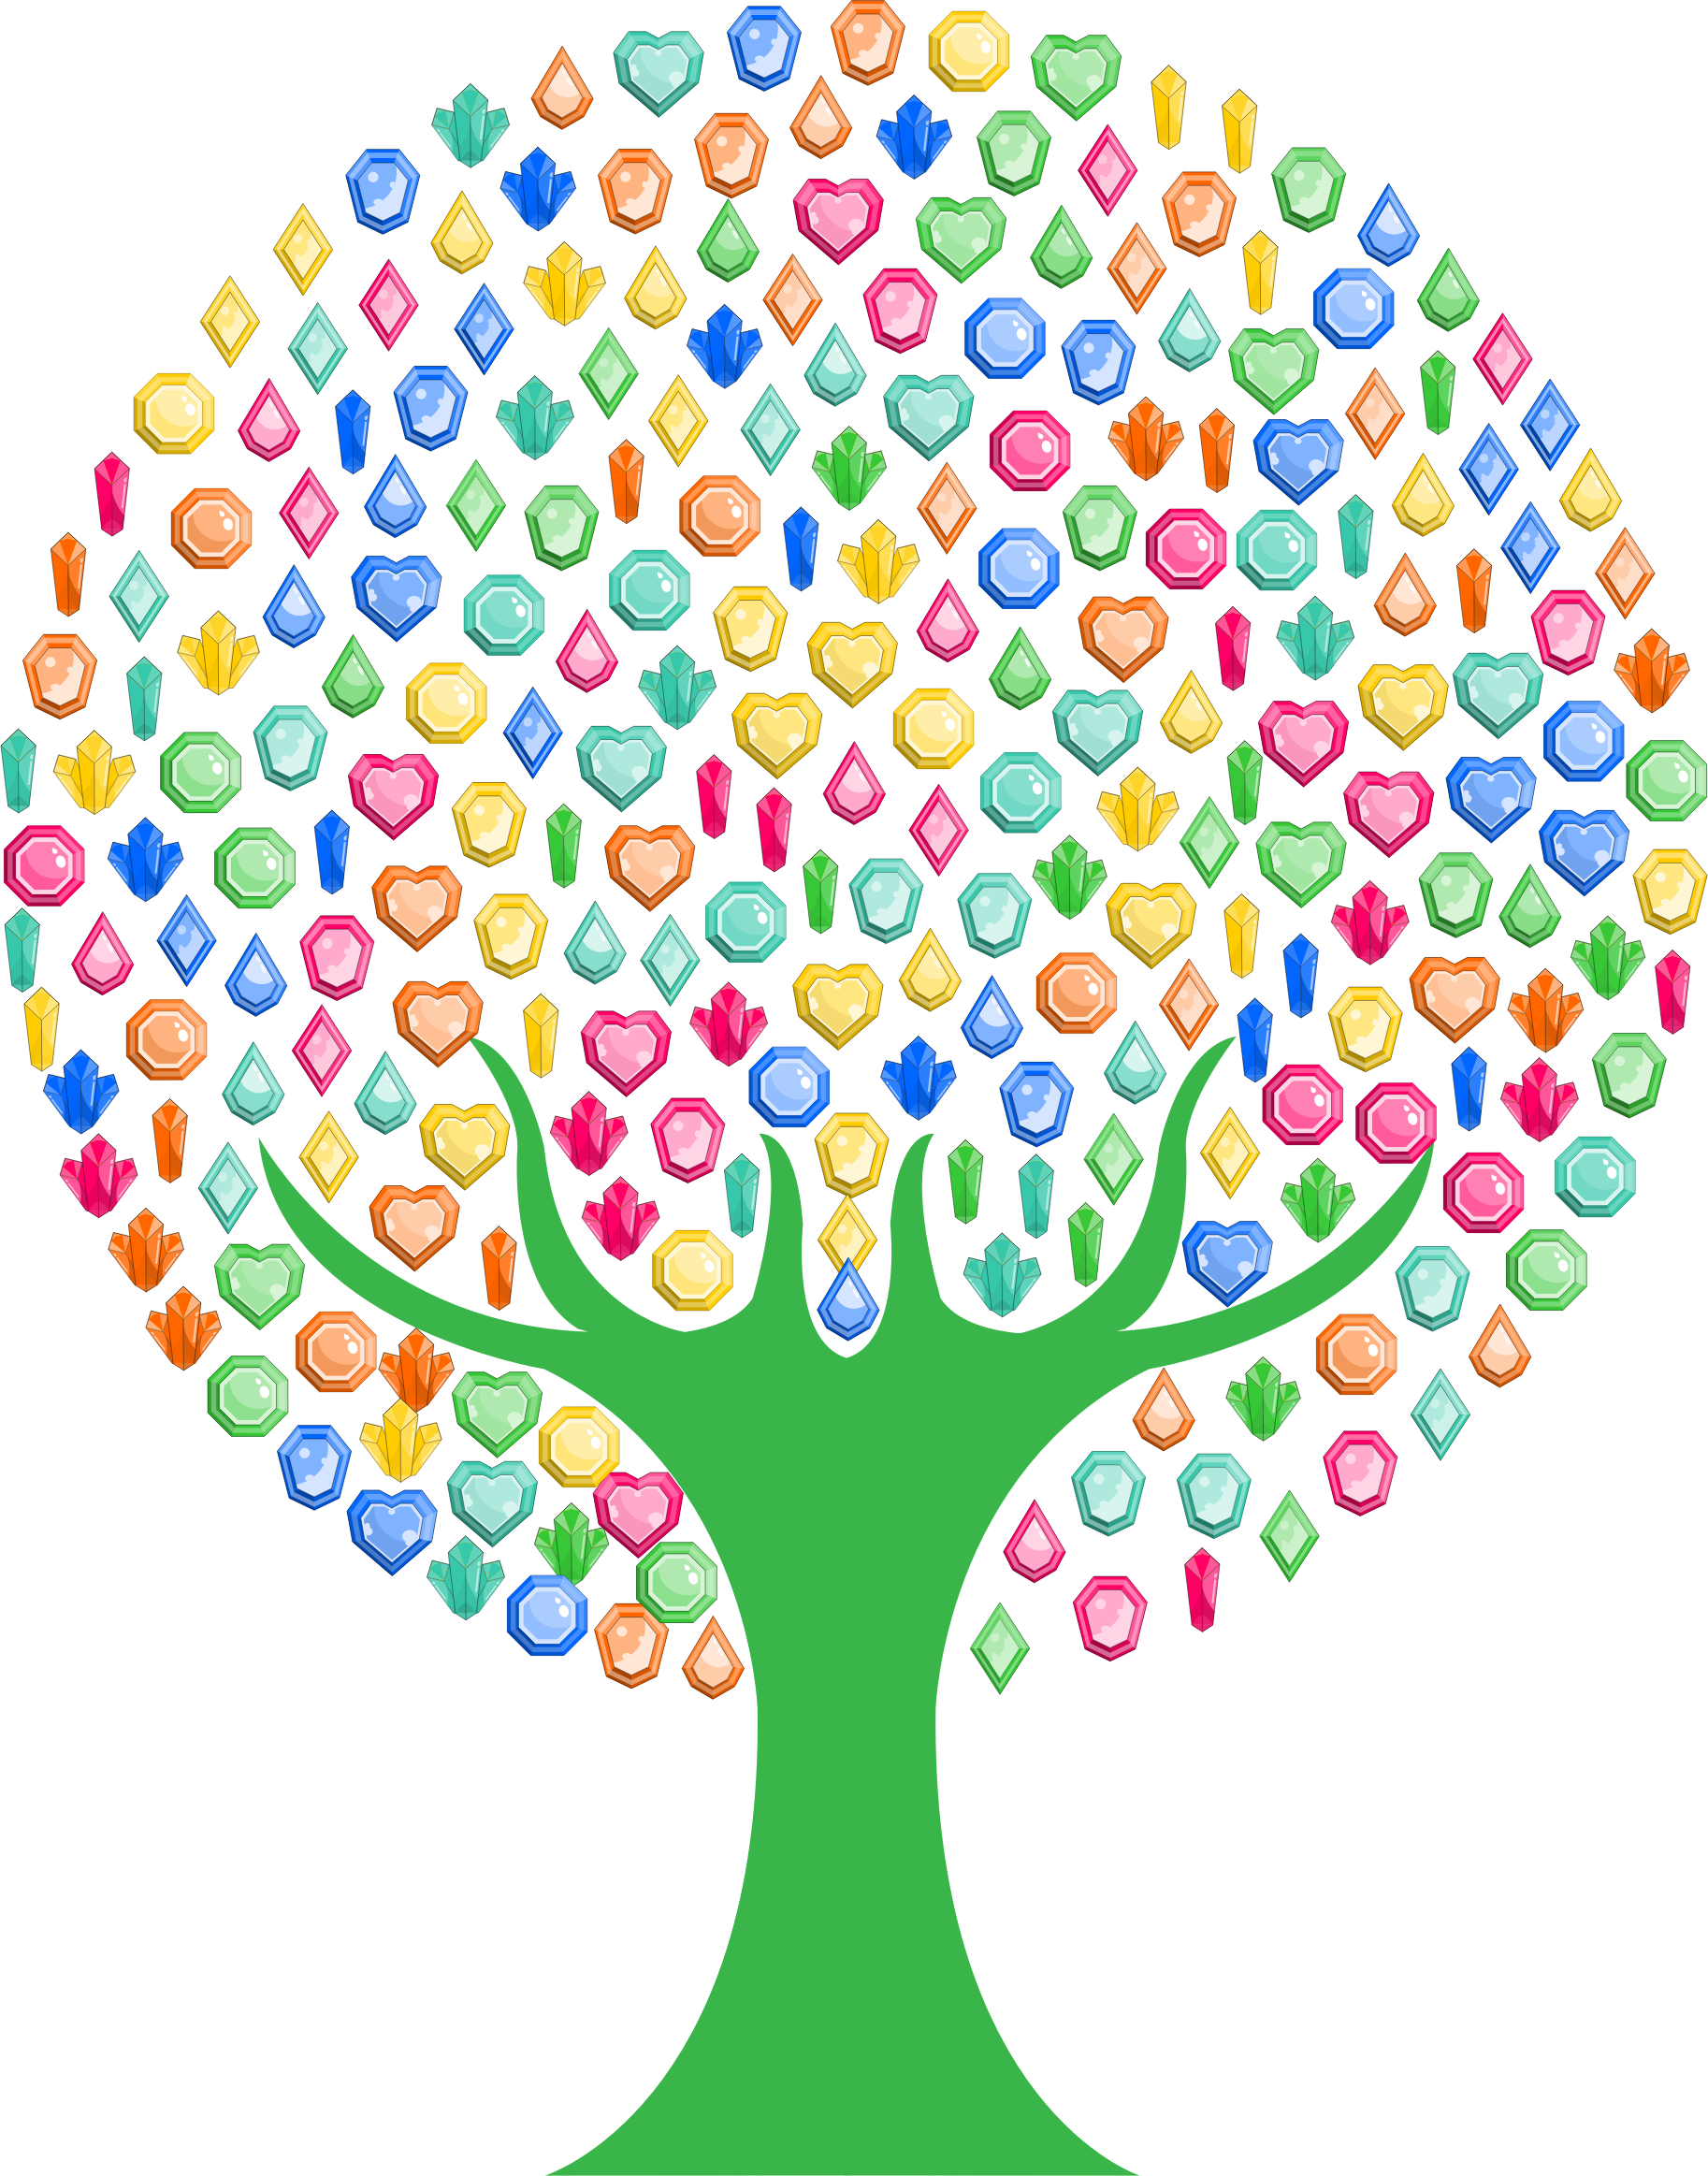 Tree circle clipart clipart black and white download Clipart - Colorful Gems Tree clipart black and white download